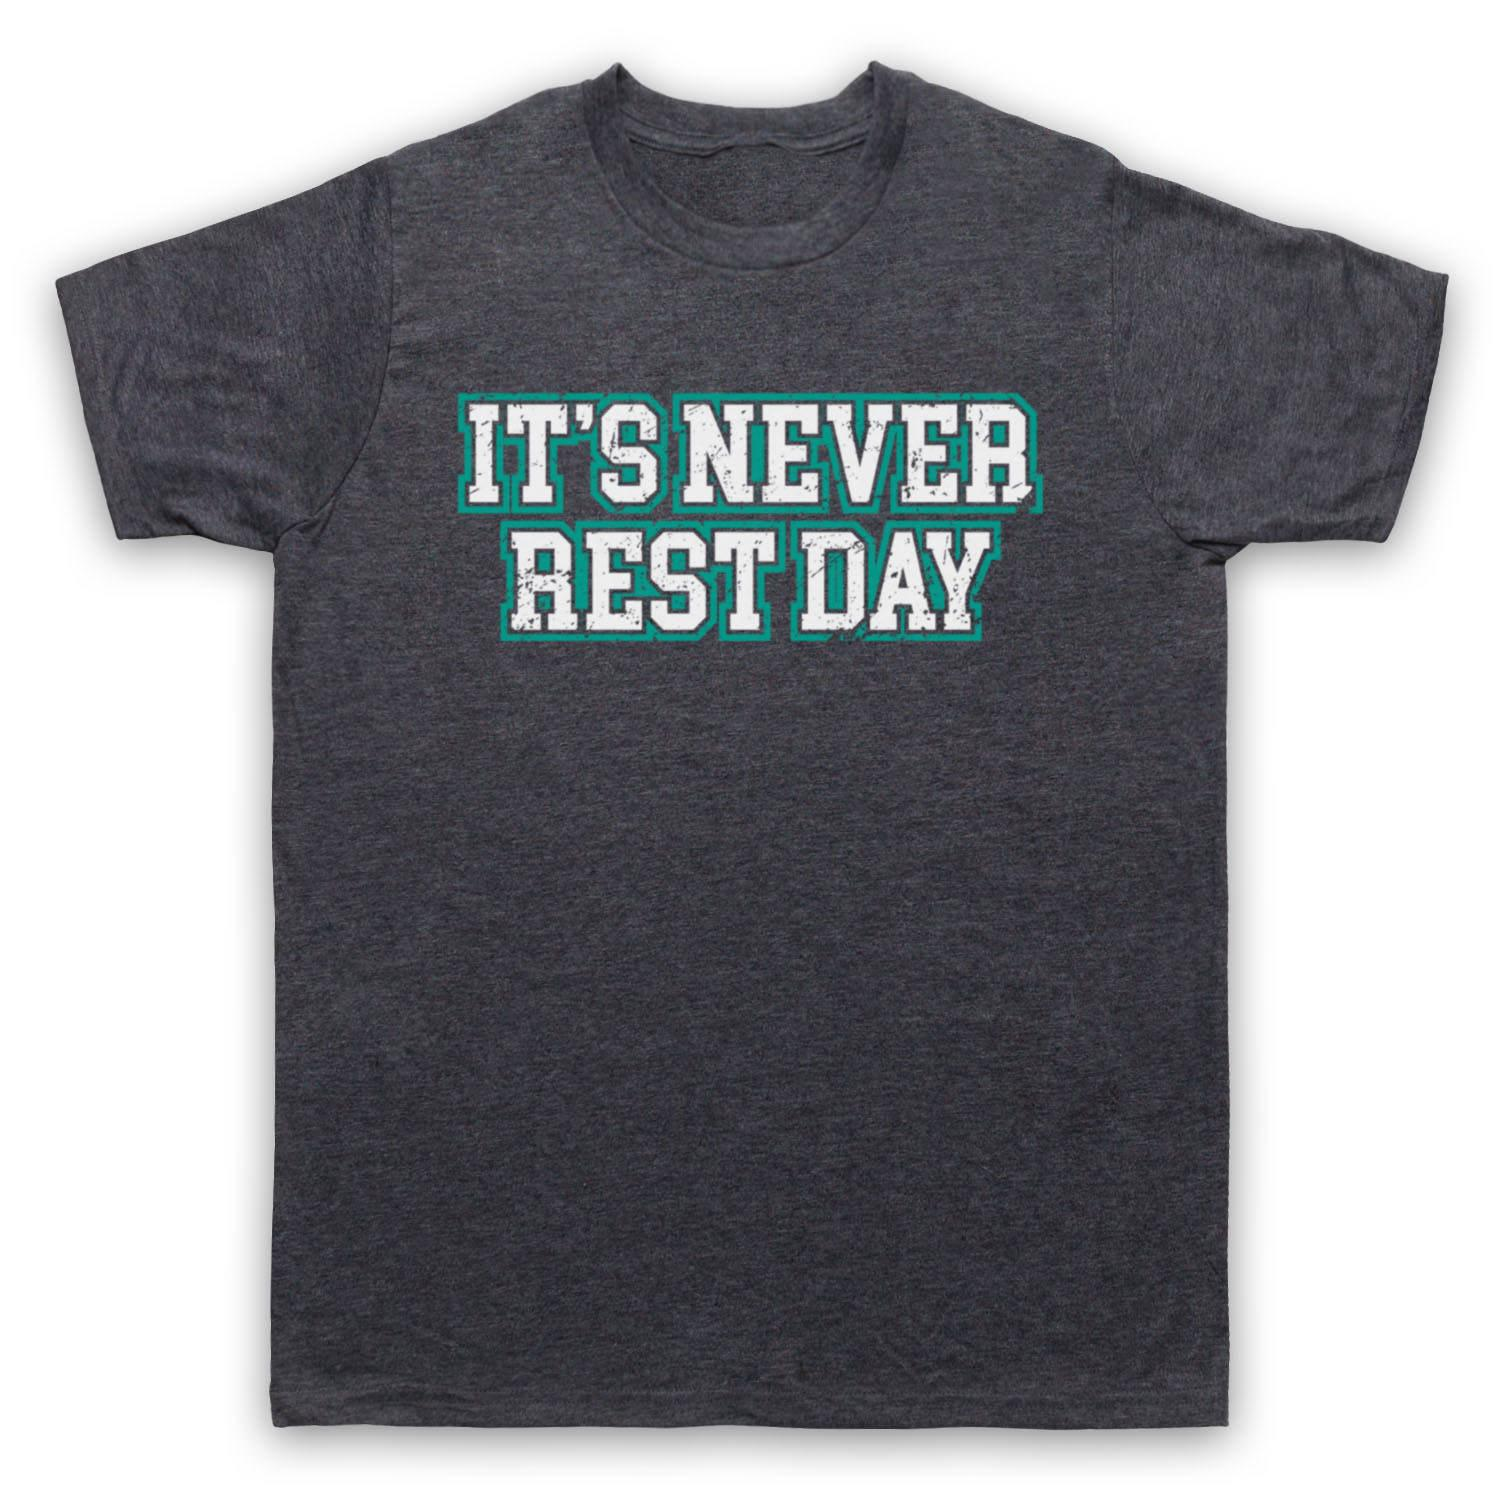 ab49ac9751a IT'S NEVER REST DAY BODYBUILDING WORKOUT GYM SLOGAN MENS WOMENS KIDS  T-SHIRT colour jersey Print t shirt